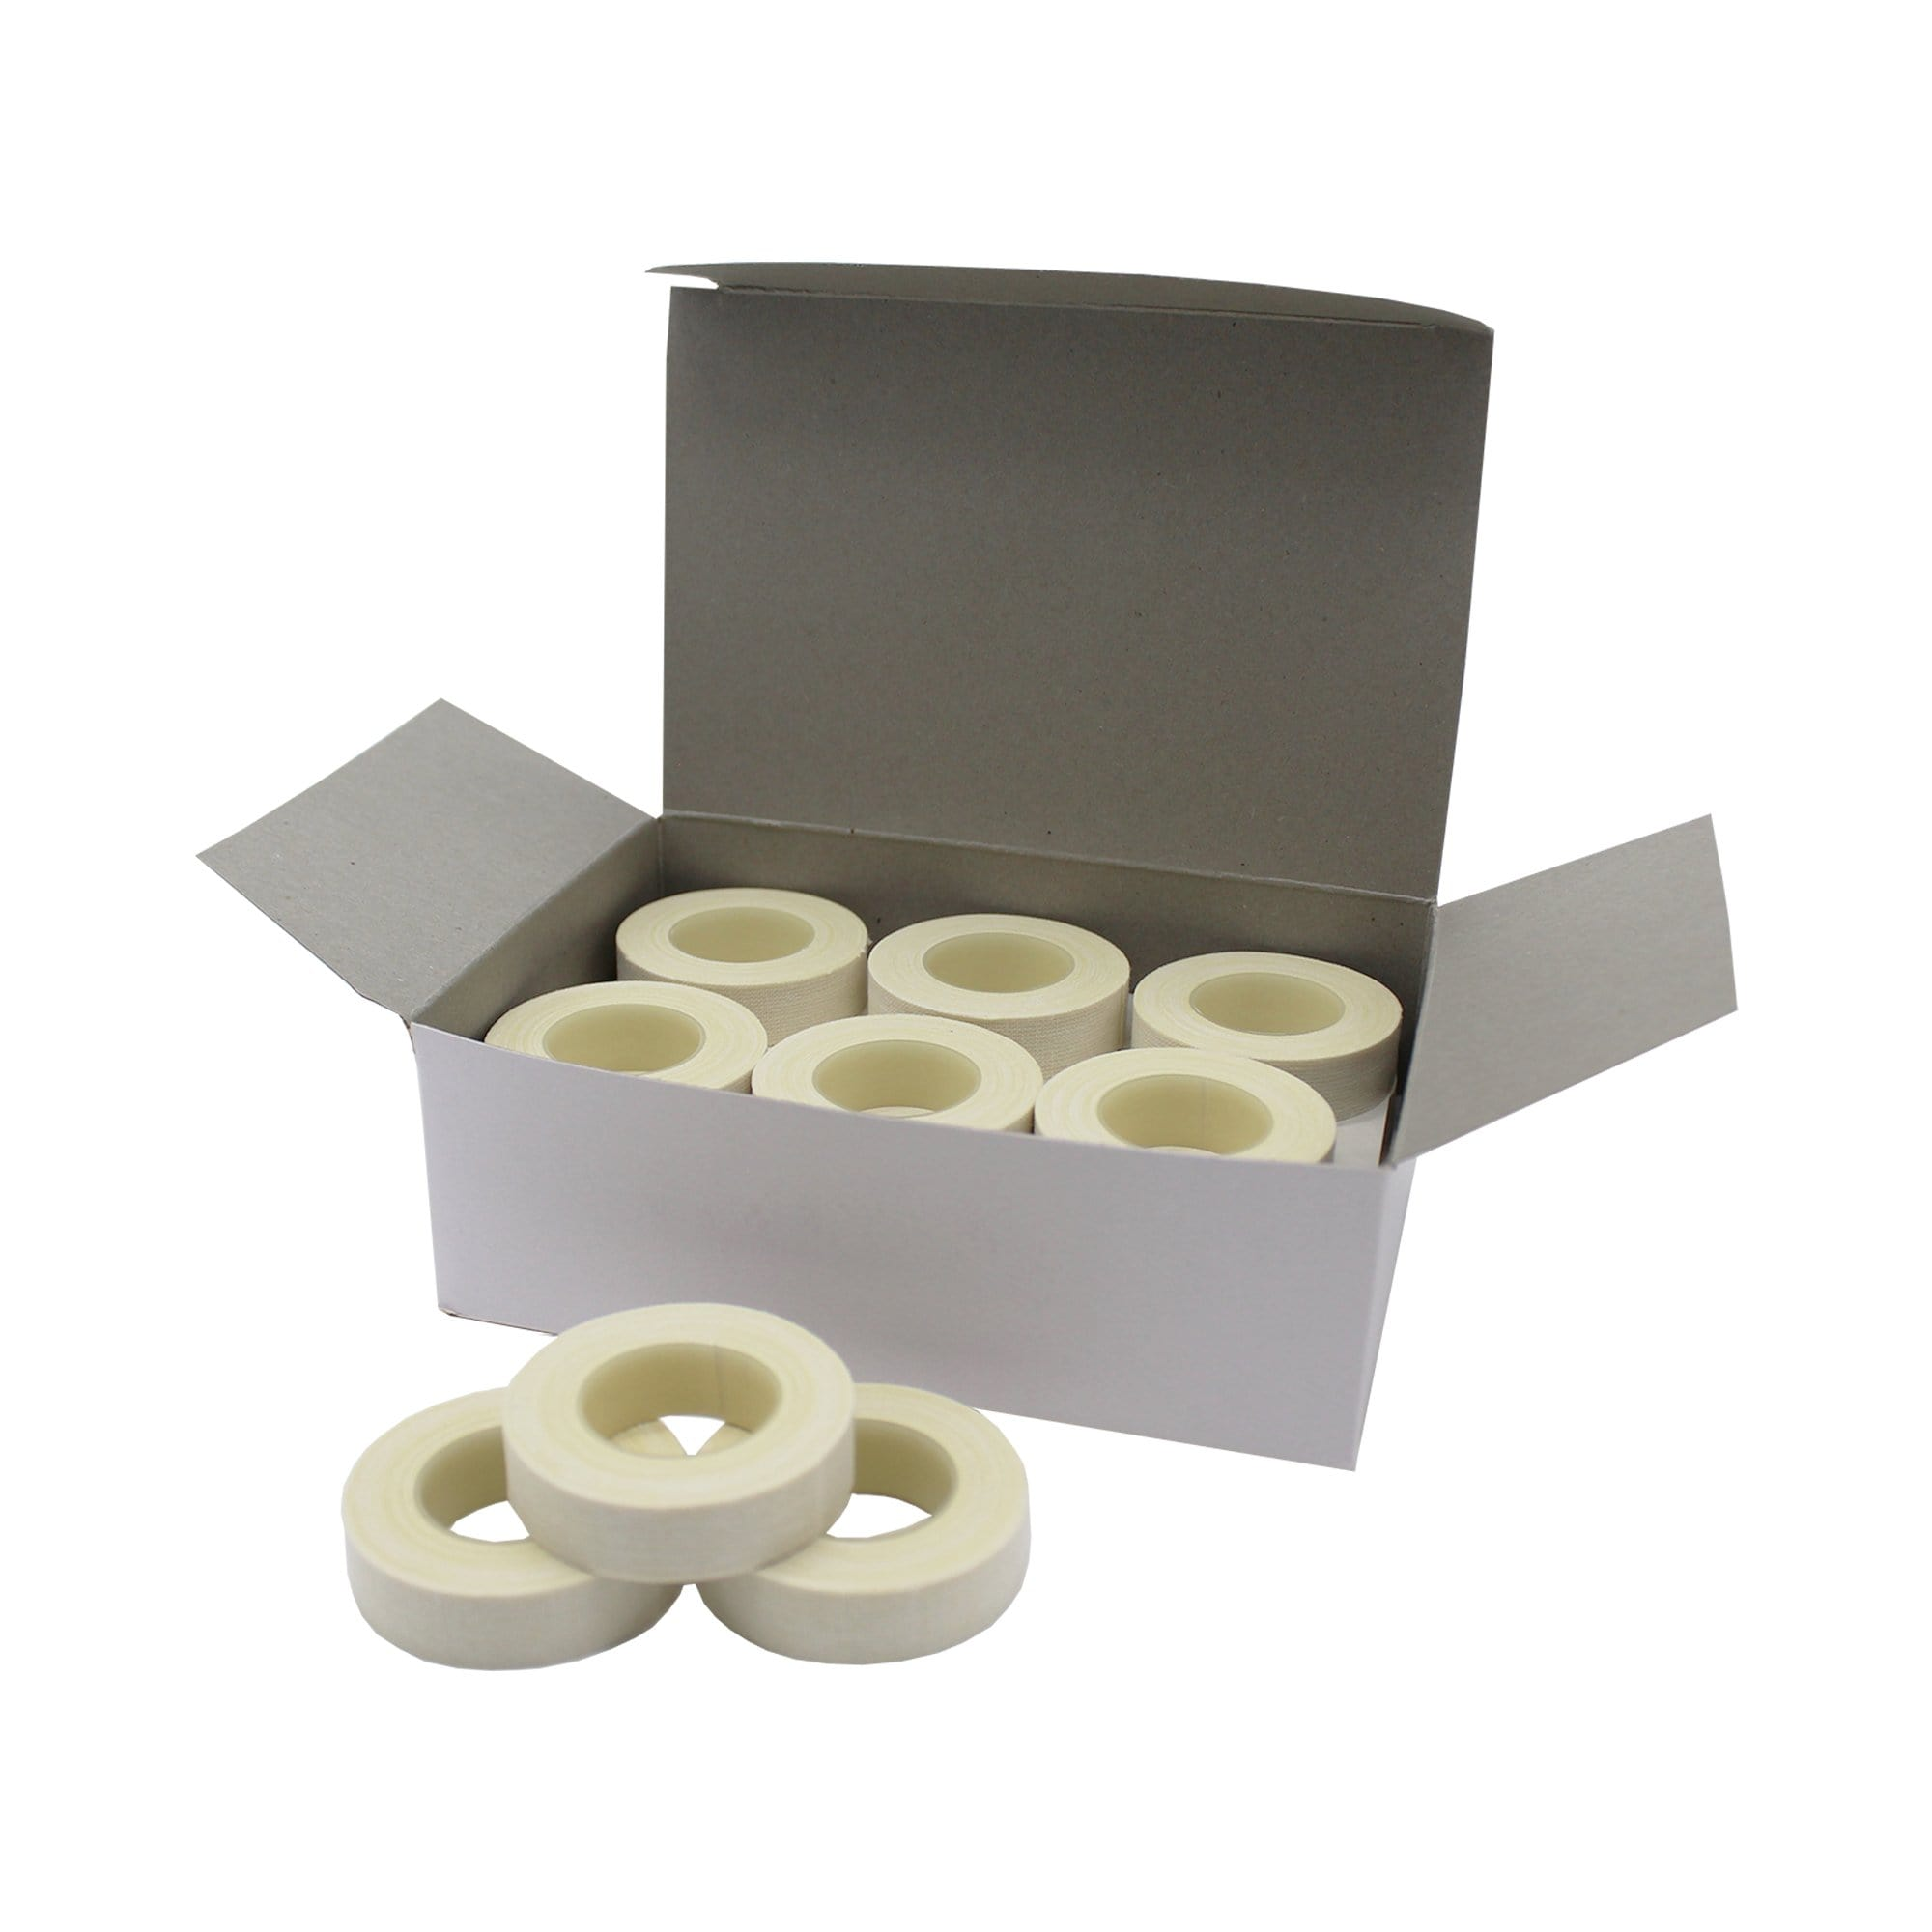 Adhesive Cotton Tape Roll, 1.27cm x 4.5m - Ready First Aid - (Box of 24)